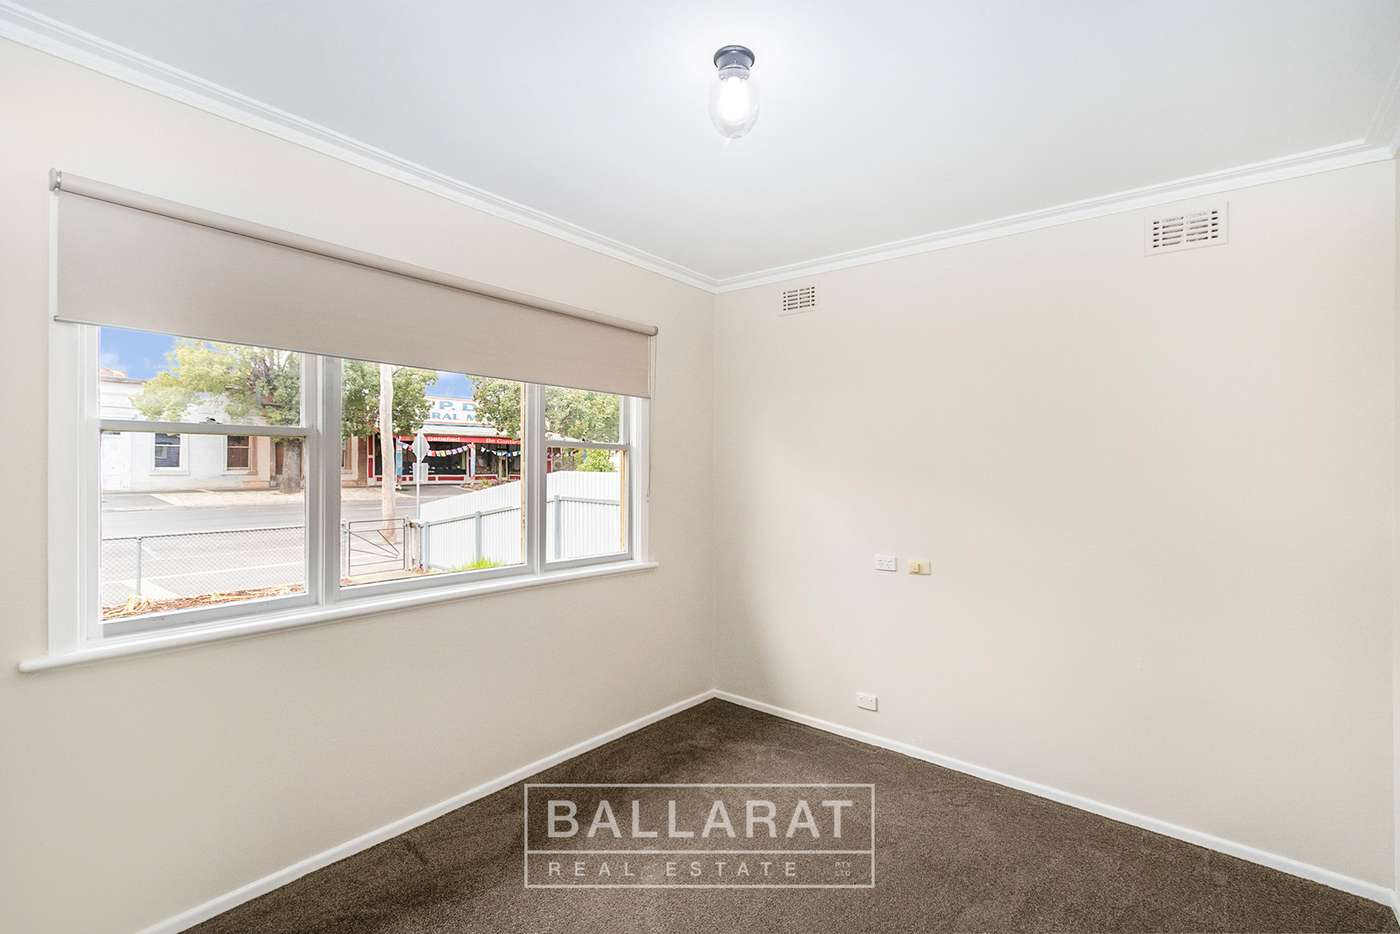 Fifth view of Homely house listing, 91 Broadway, Dunolly VIC 3472